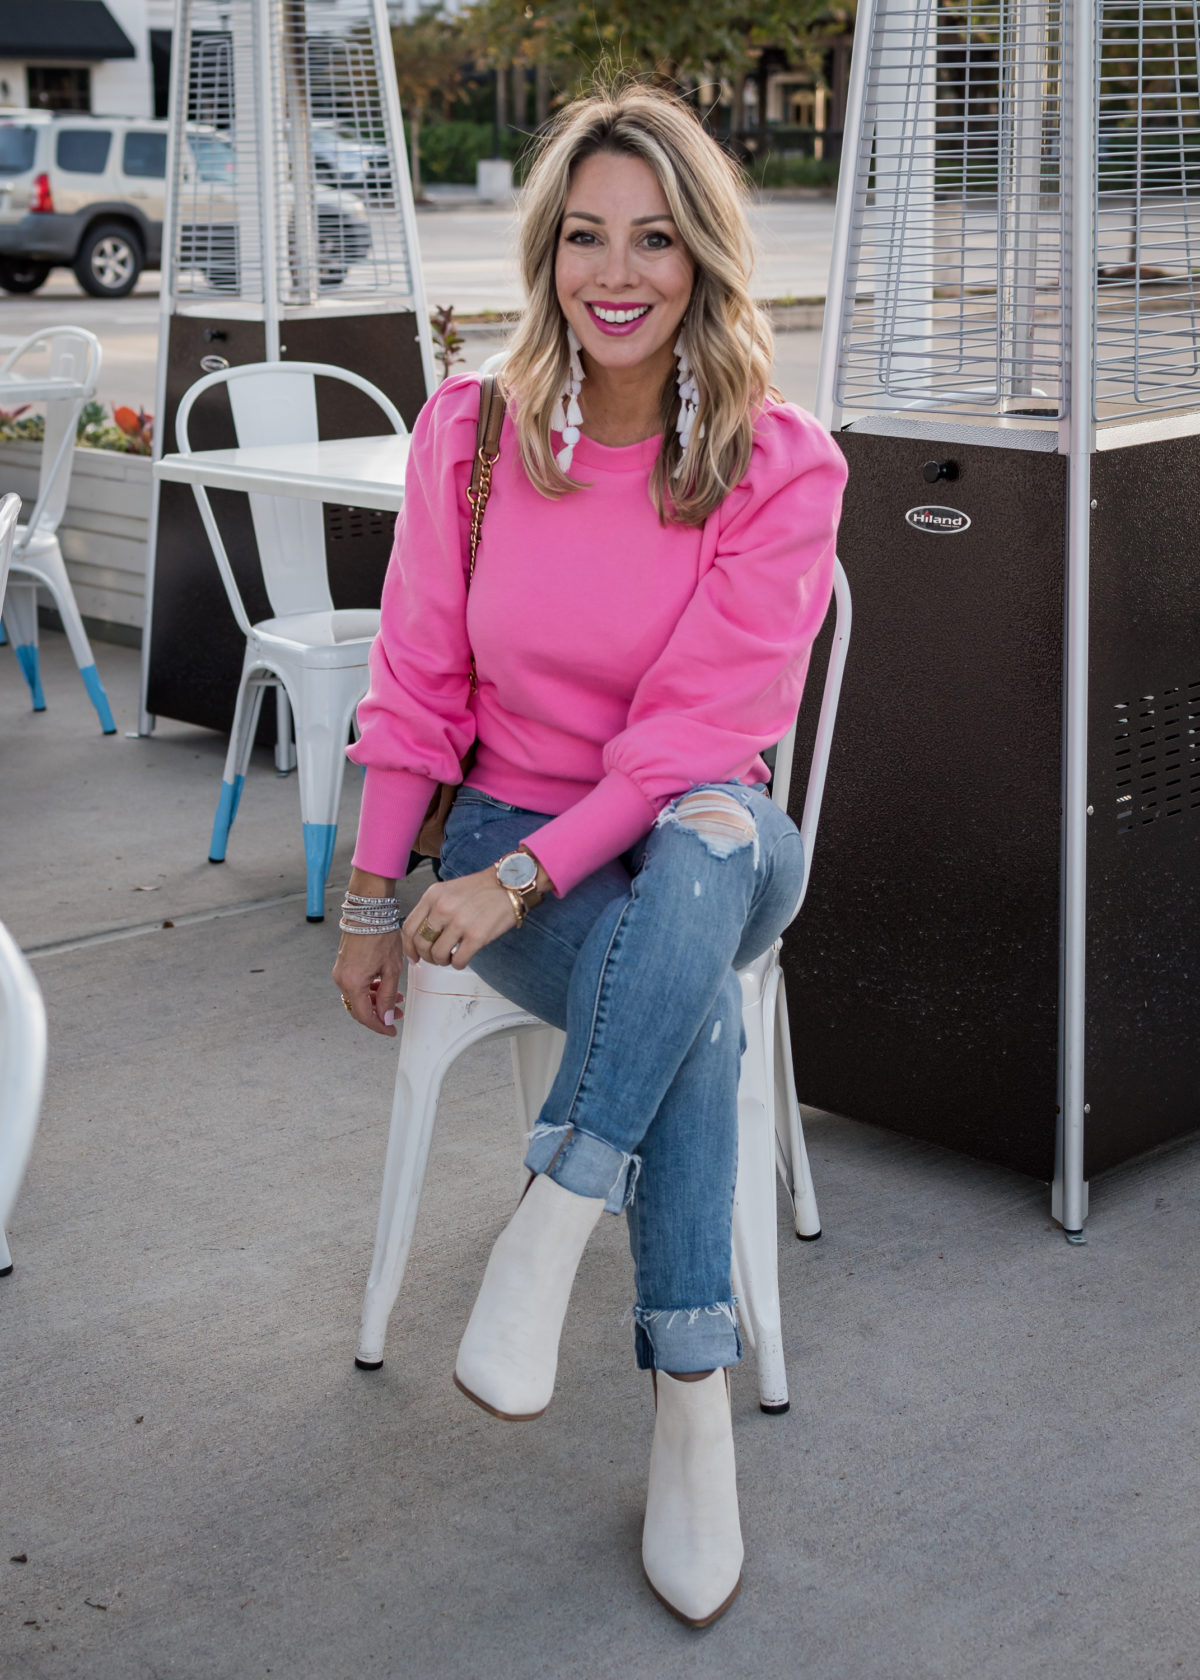 Valentine's Day Outfits, Pink Puff Sleeve Sweatshirt, Jeans, Booties, Statement Earrings